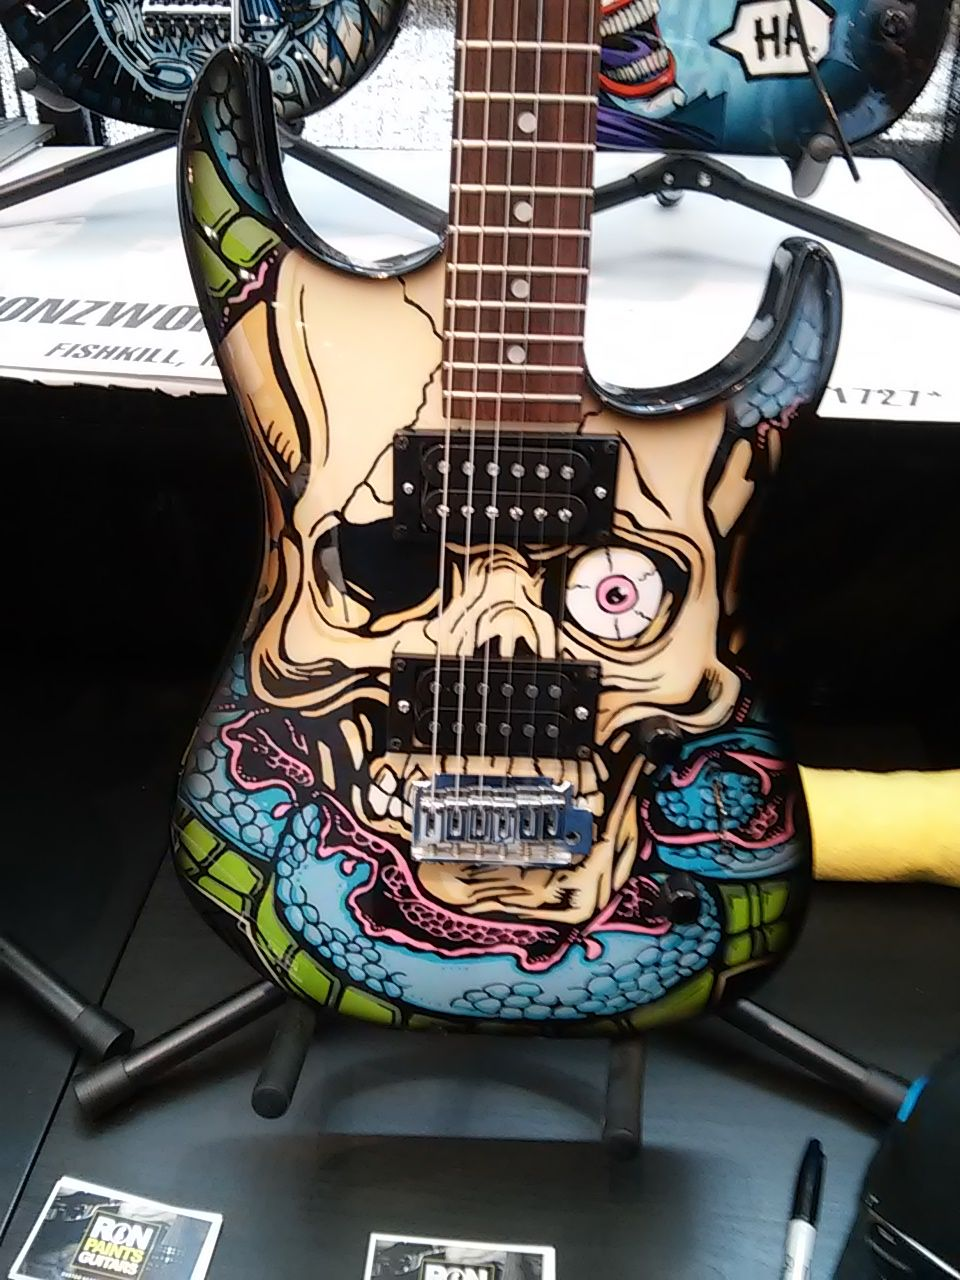 another badass looking guitar from ron paints guitars booth at 2016 summer namm convention in. Black Bedroom Furniture Sets. Home Design Ideas